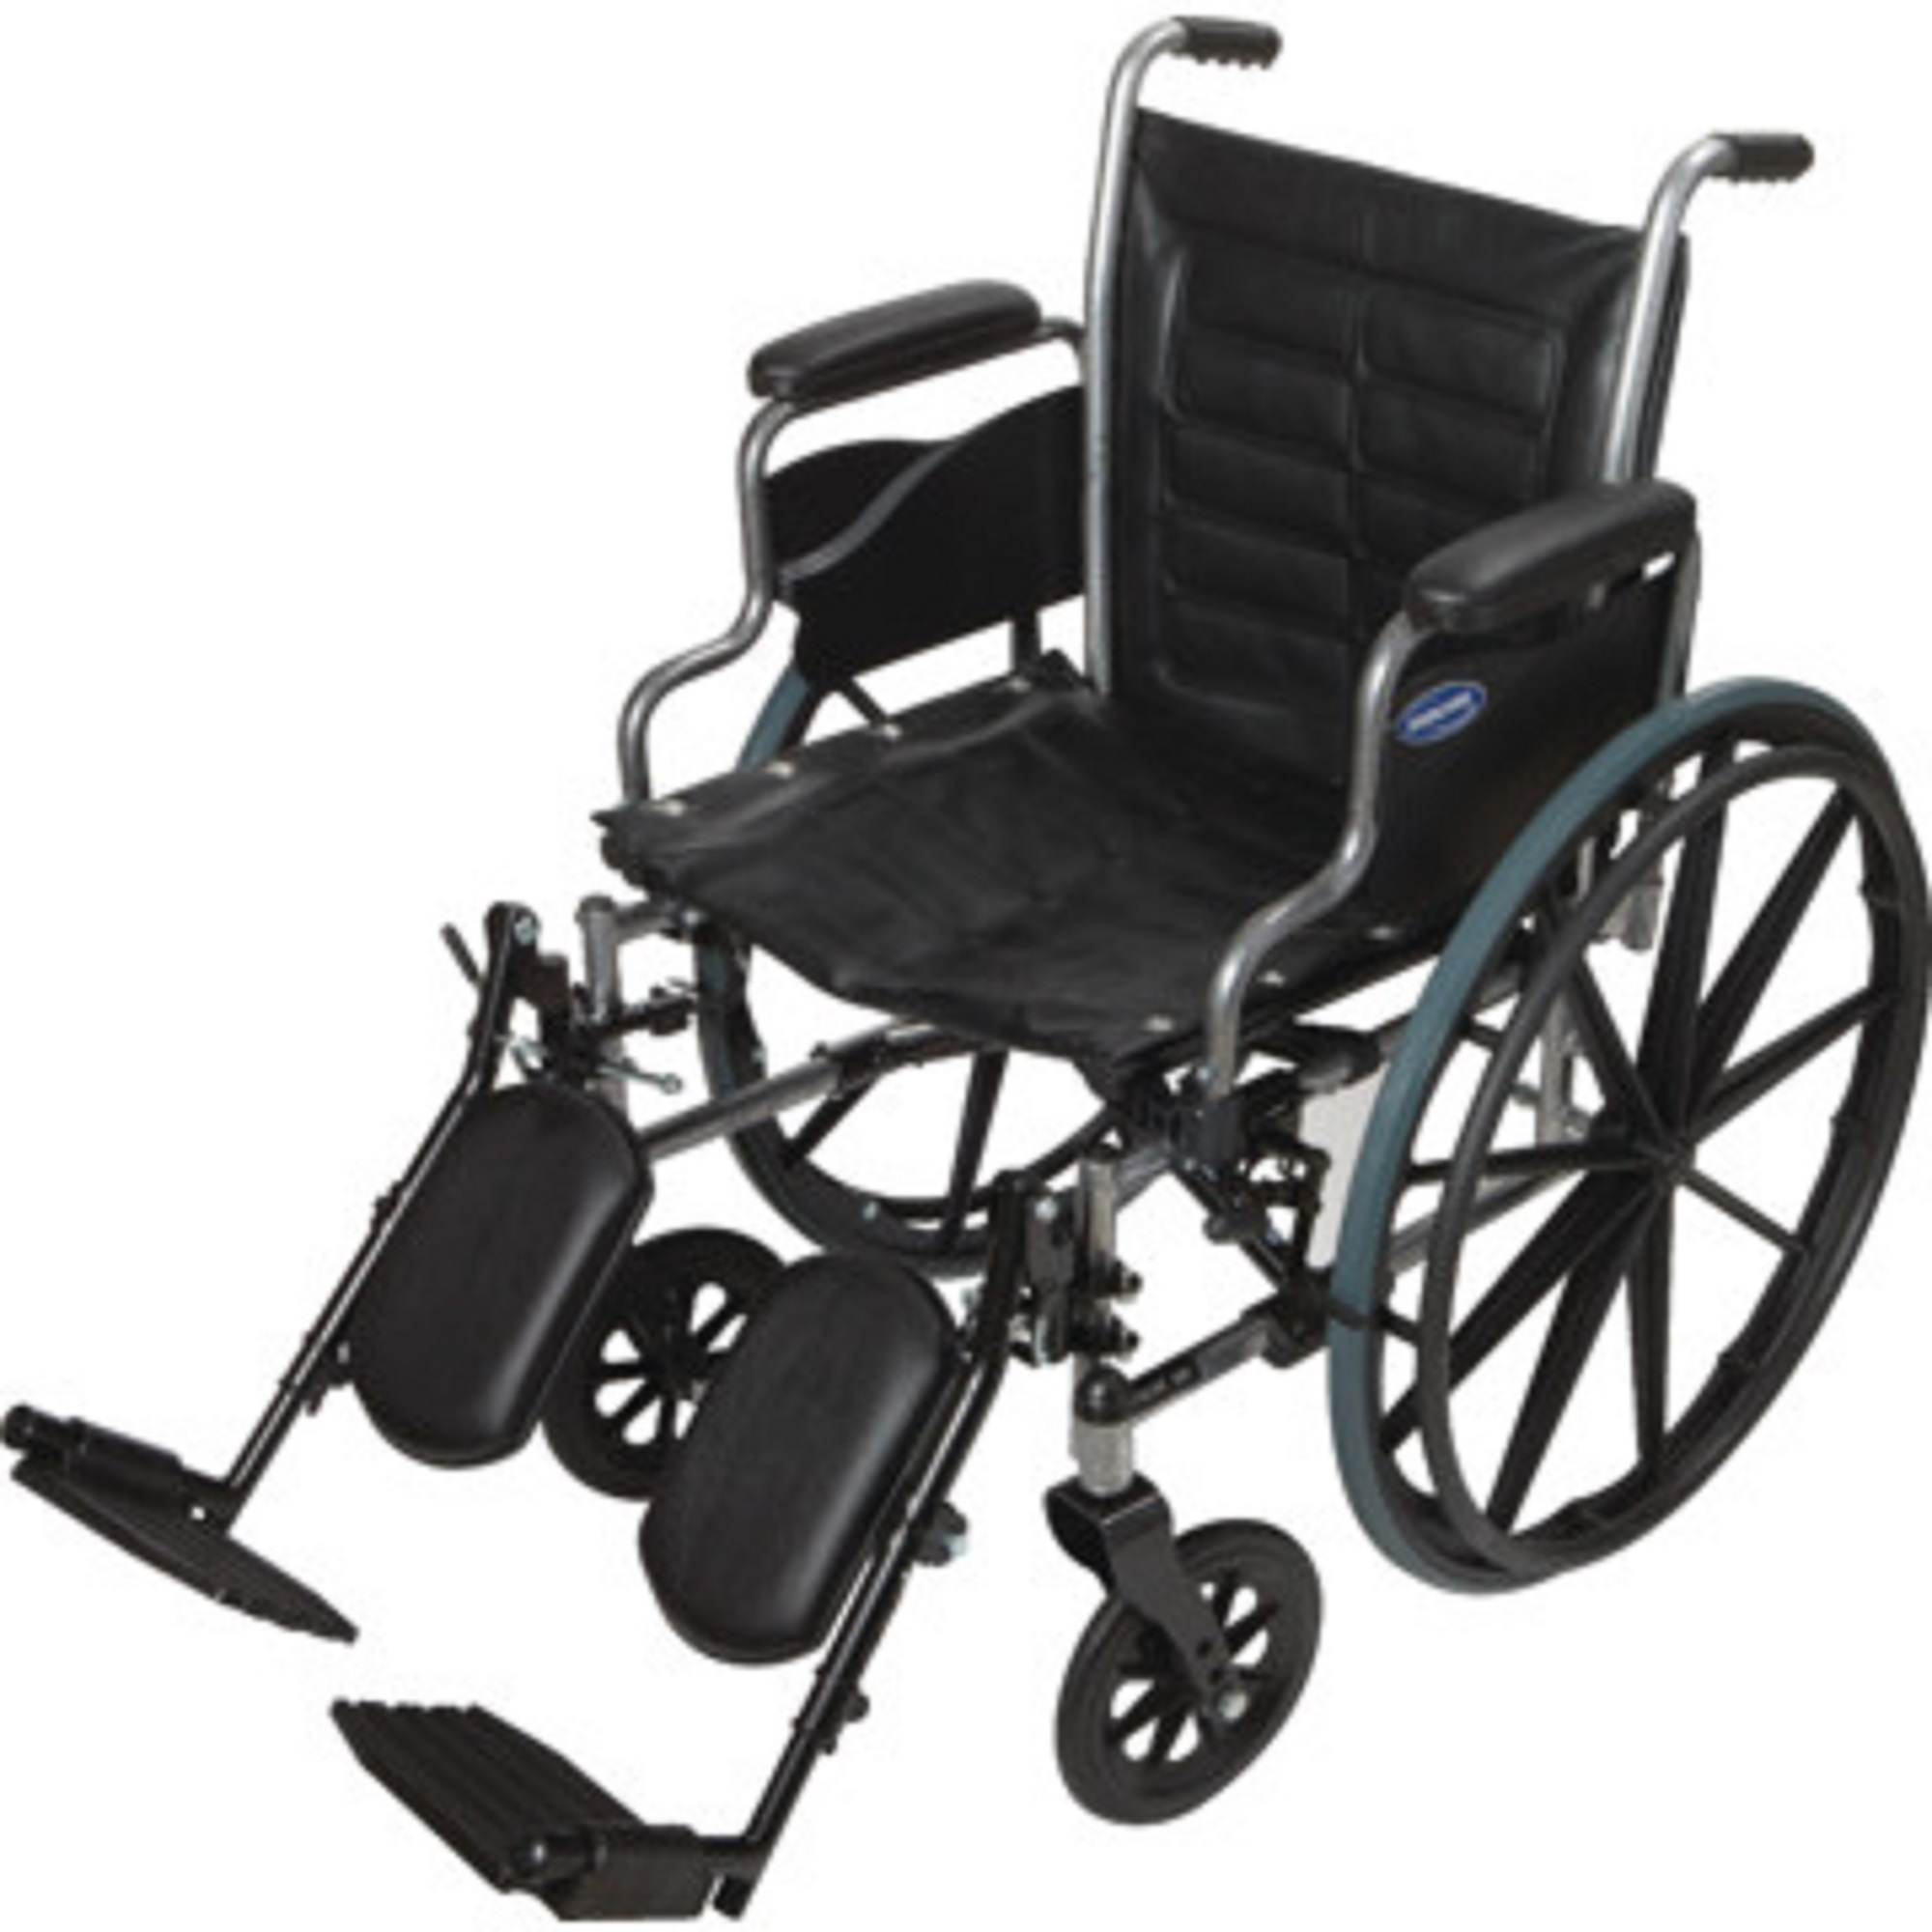 """Invacare - Tracer IV - Manual Wheelchair - Desk-Length Armrest with Elevating Legrest - 24"""" x 18"""" Seat - Silver Vein"""